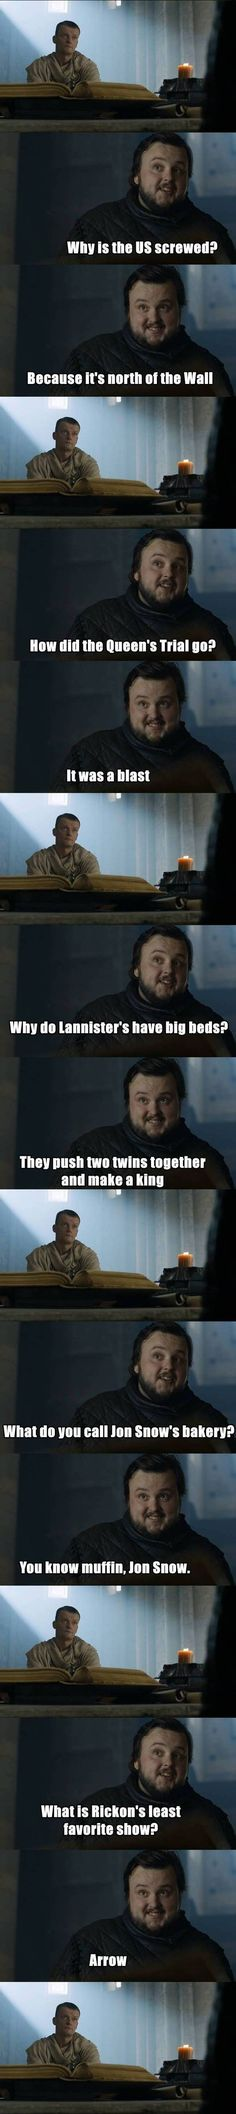 #Game #of #Thrones (Season 7) (2017) sam-citadel-memes 2. Game of thrones funny humour meme. Samwell Tarly